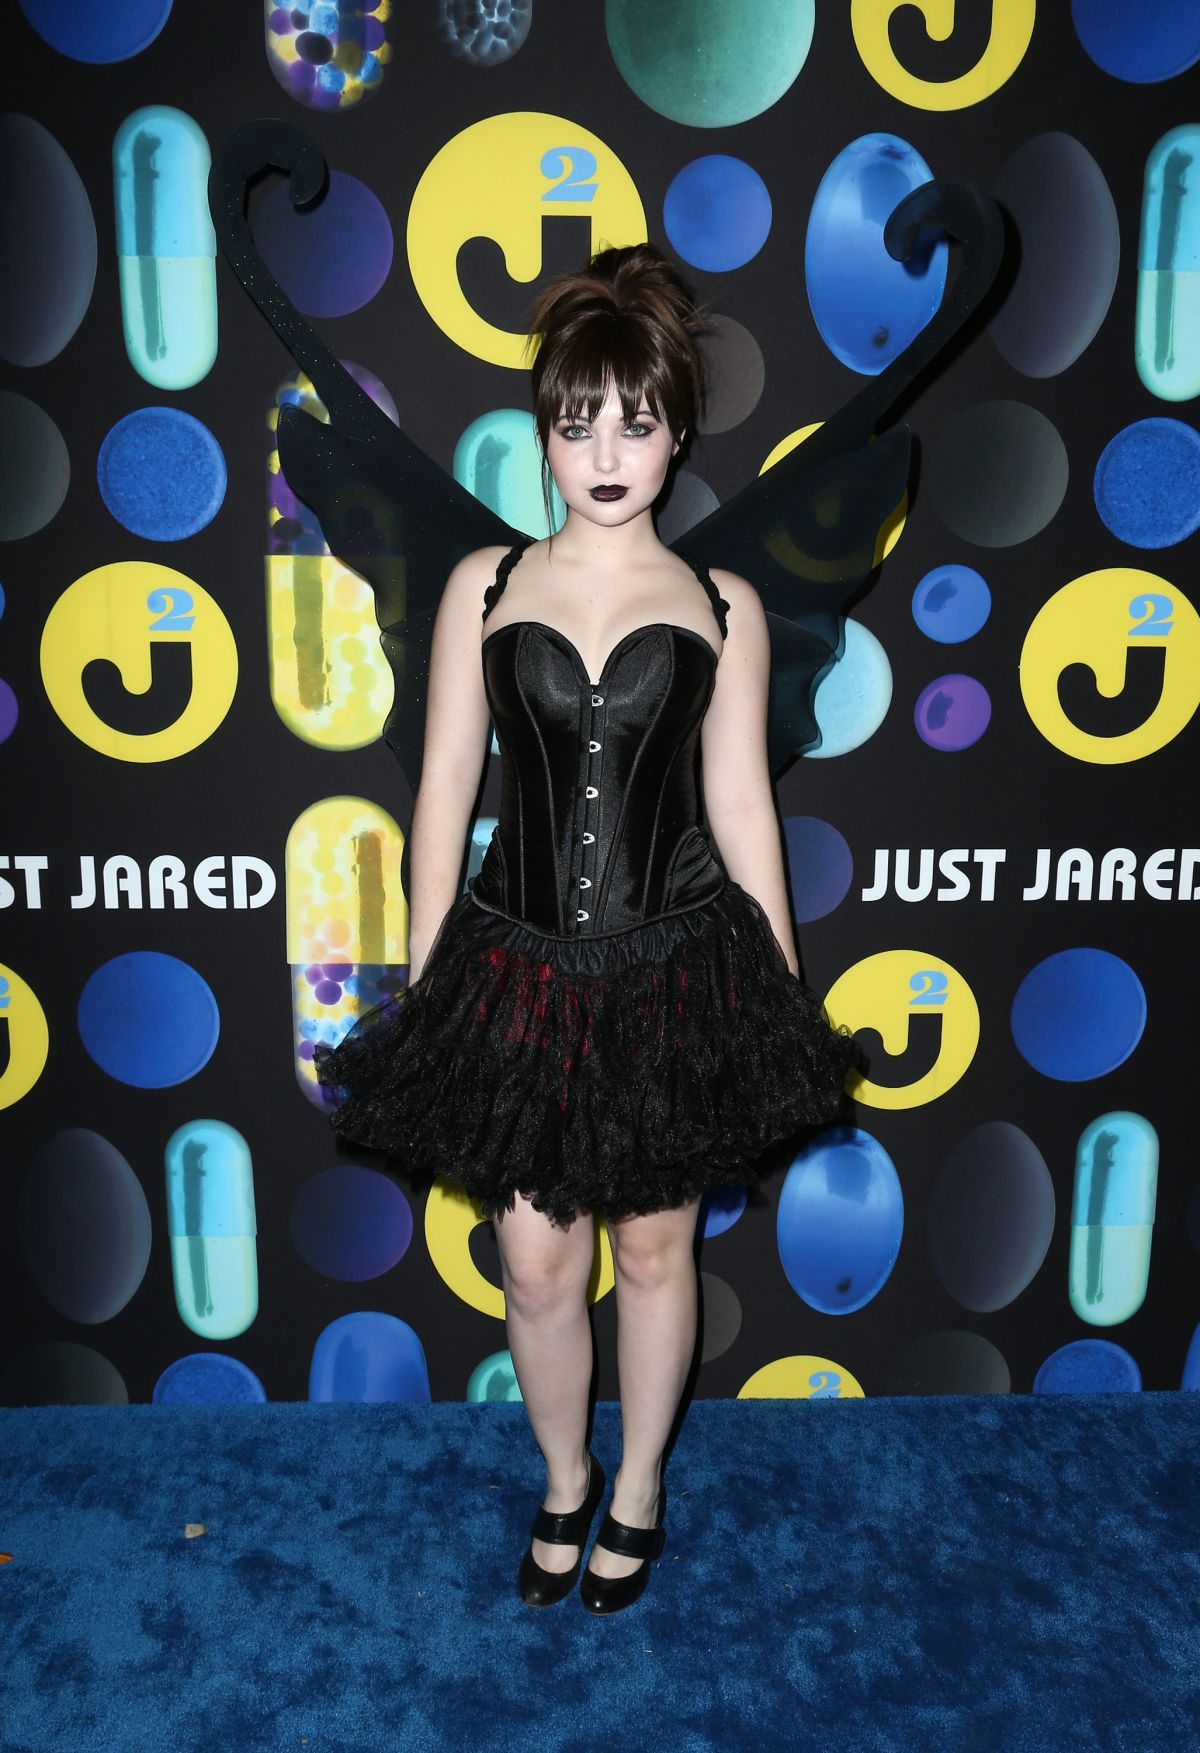 SAMMI HANRATY at Just Jared Halloween Party in Hollywood 10/31/2015